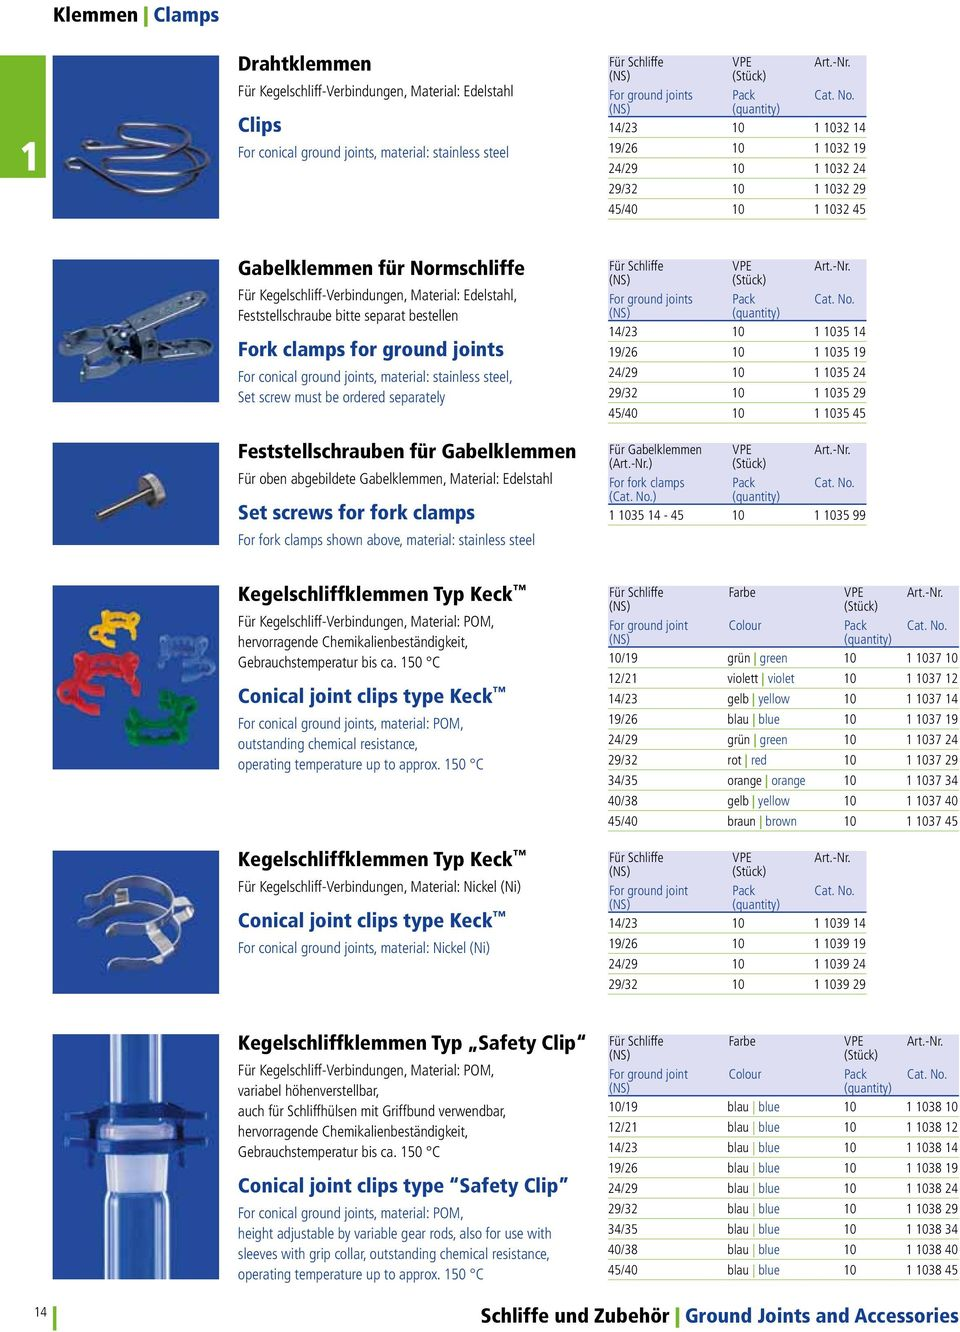 clamps for ground joints For conical ground joints, material: stainless steel, Set screw must be ordered separately Feststellschrauben für Gabelklemmen Für oben abgebildete Gabelklemmen, Material: